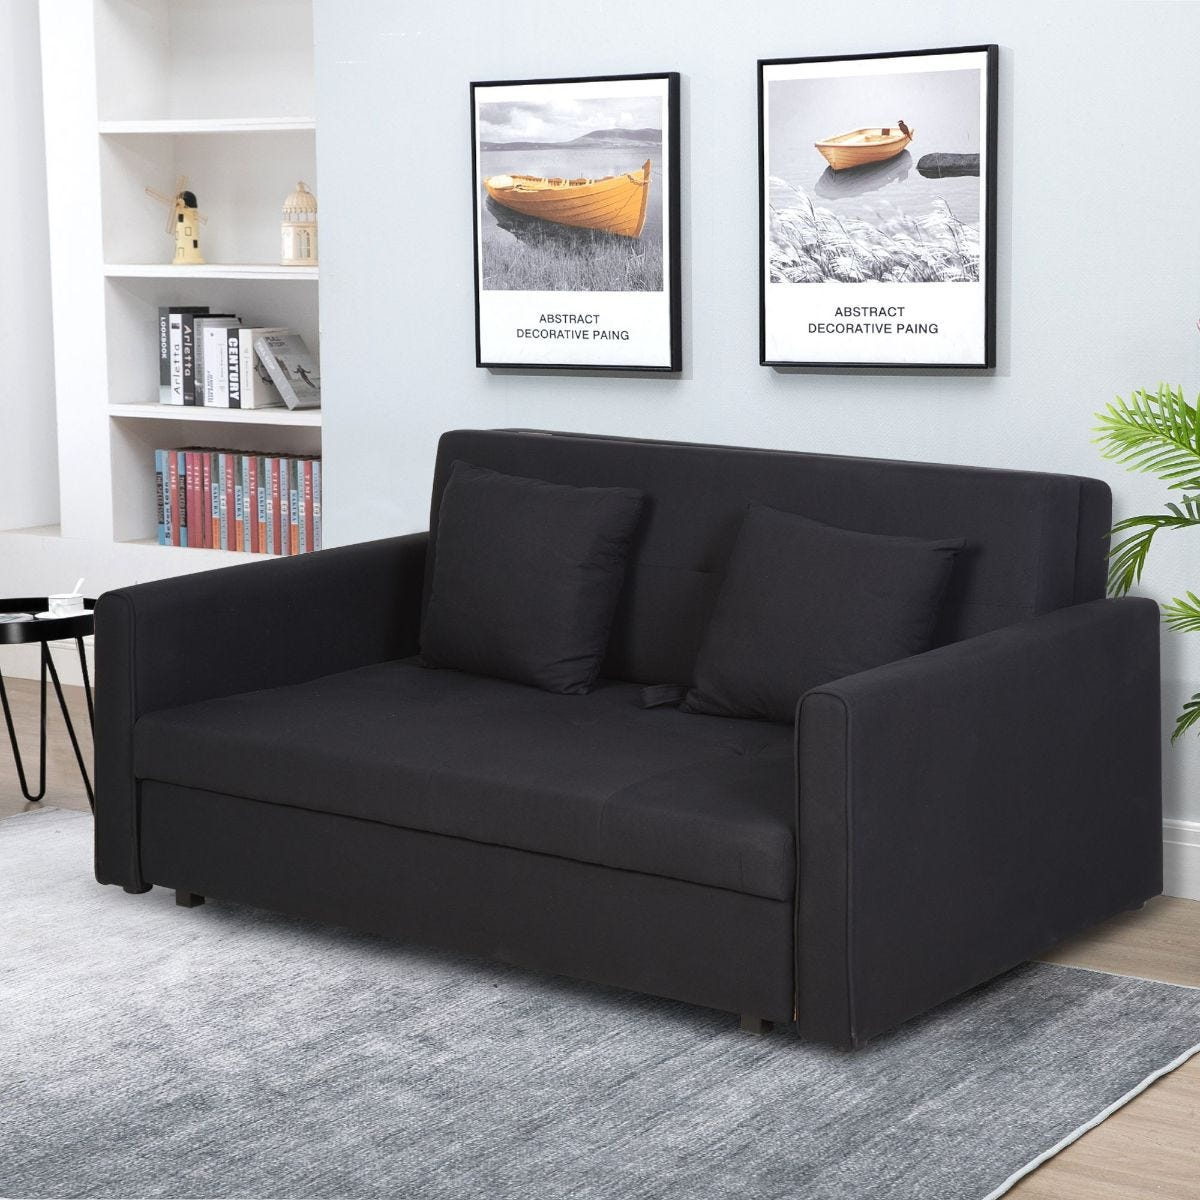 Two Seater Storage Sofa Bed Wood Frame Padding Compact Dark Grey